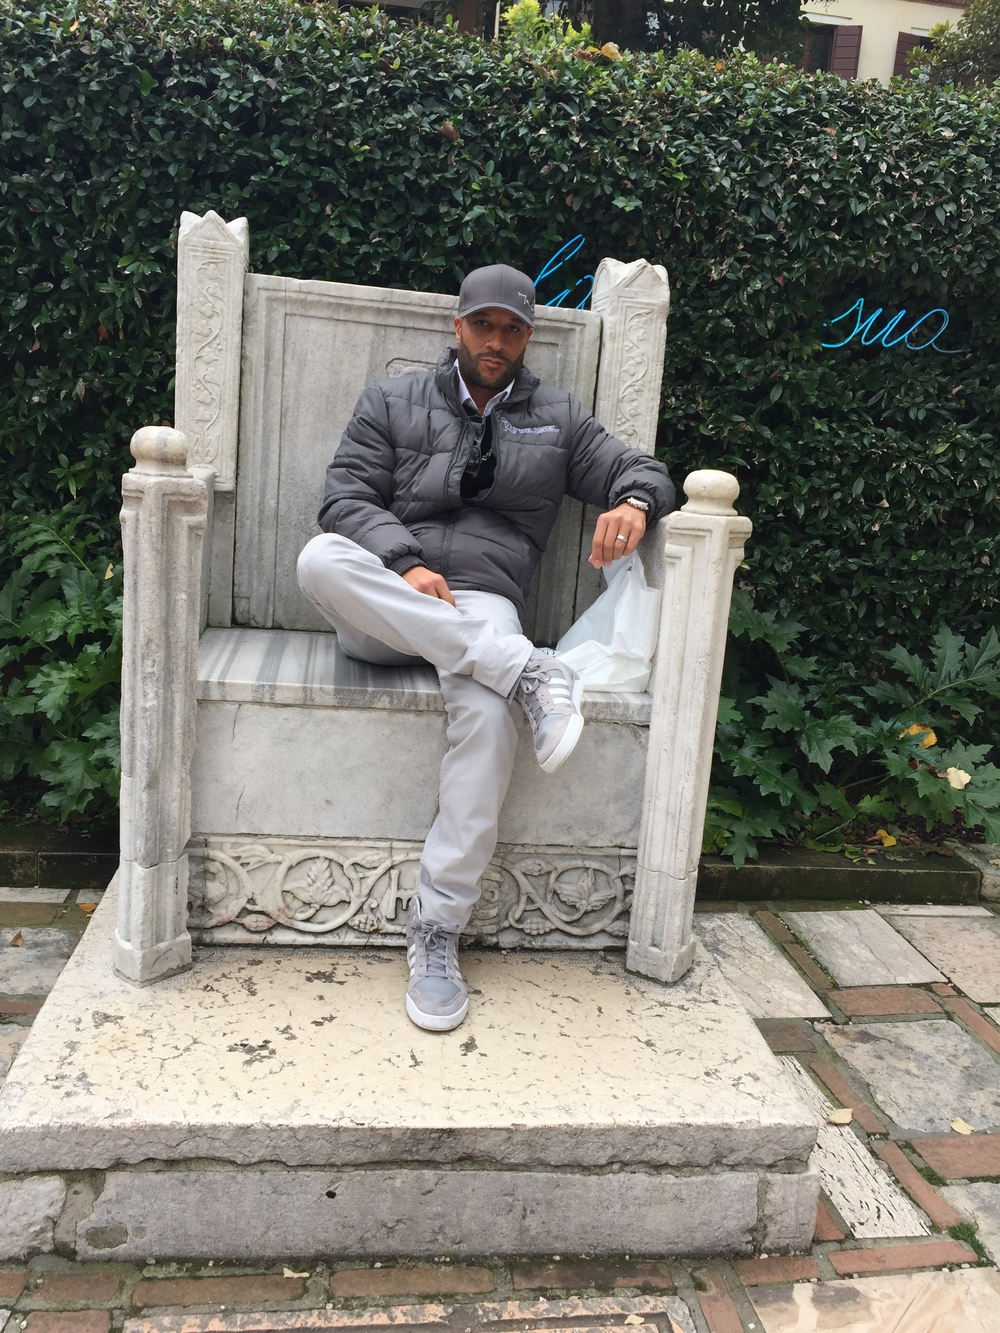 Marvin D. Rouse @ Peggy Guggenheim Museum in Venice, Italy 2015